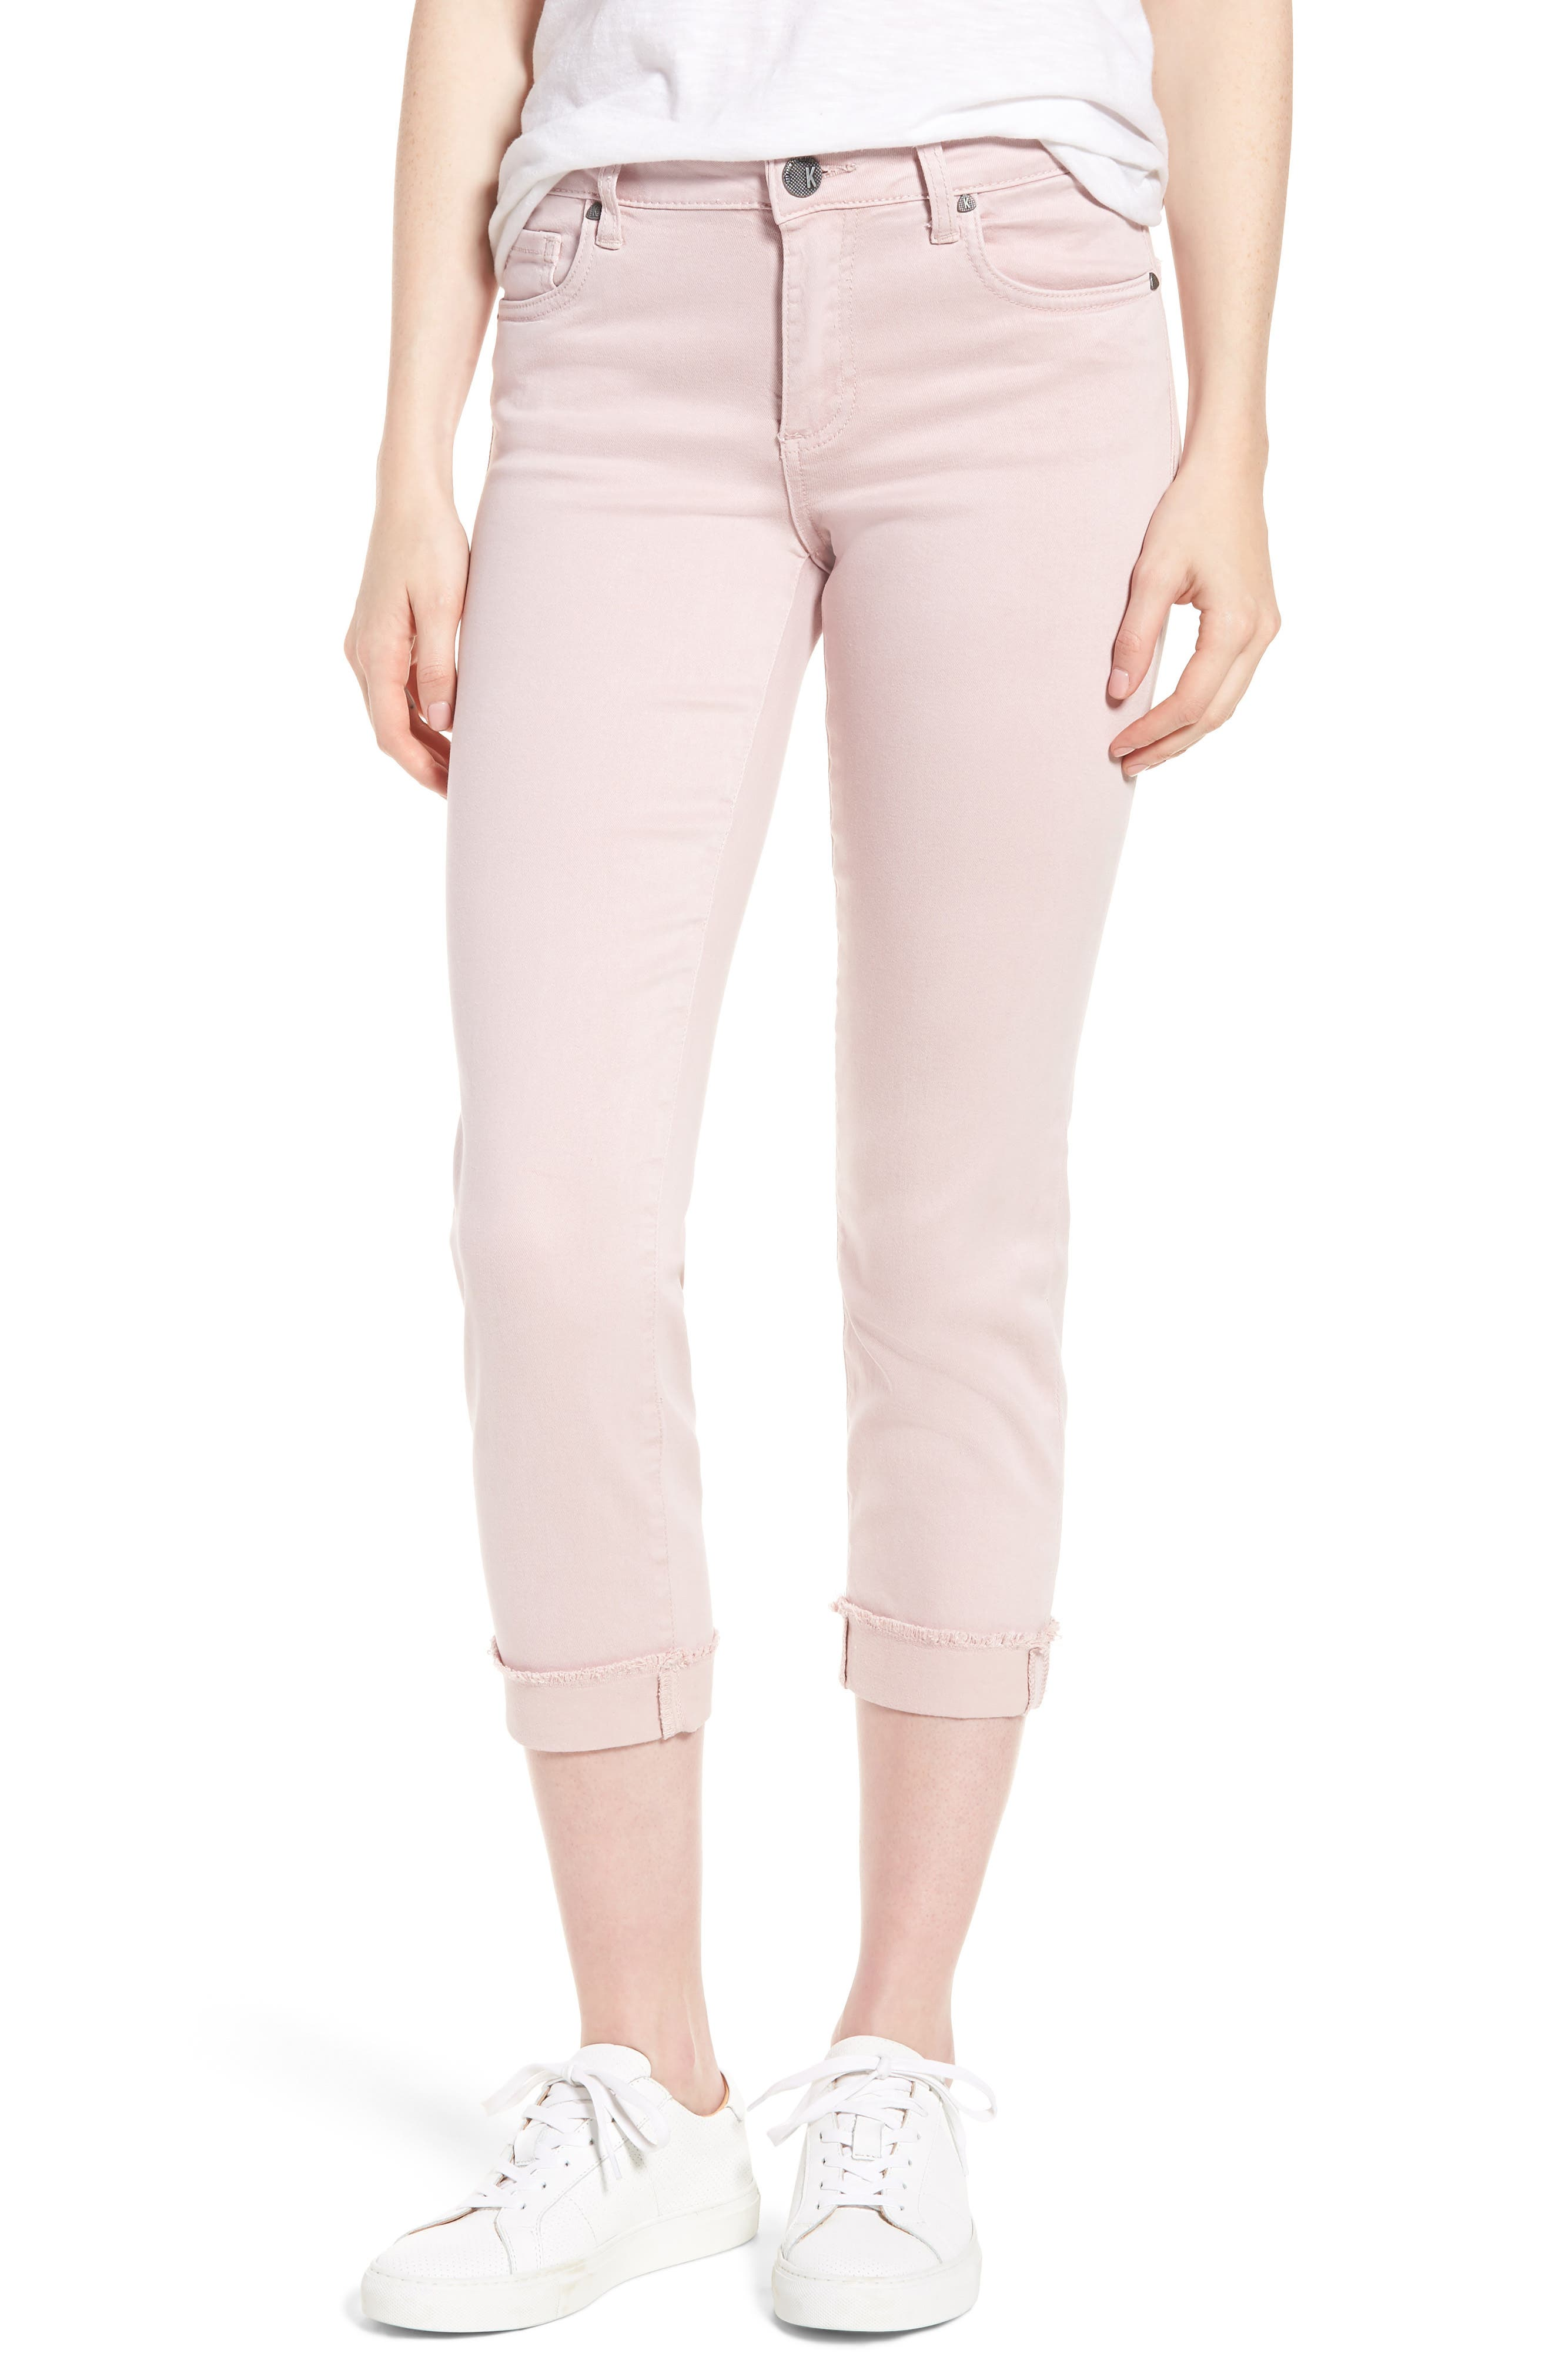 KUT from the Kloth Amy Crop Skinny Jeans,                             Main thumbnail 1, color,